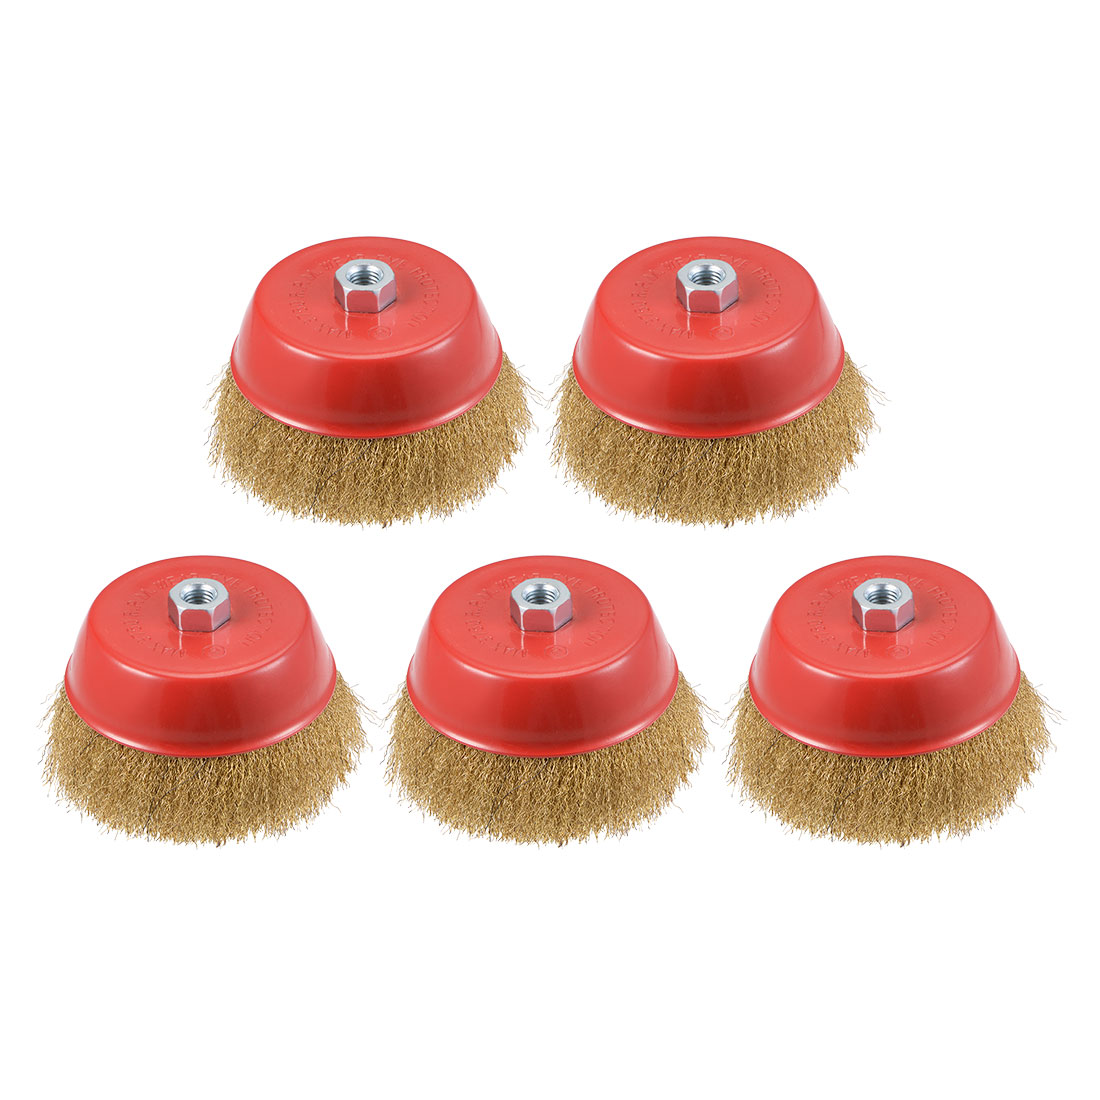 6-Inch Wire Cup Brush Brass Plated Crimped Steel with M14 Threaded Hole 5 Pcs